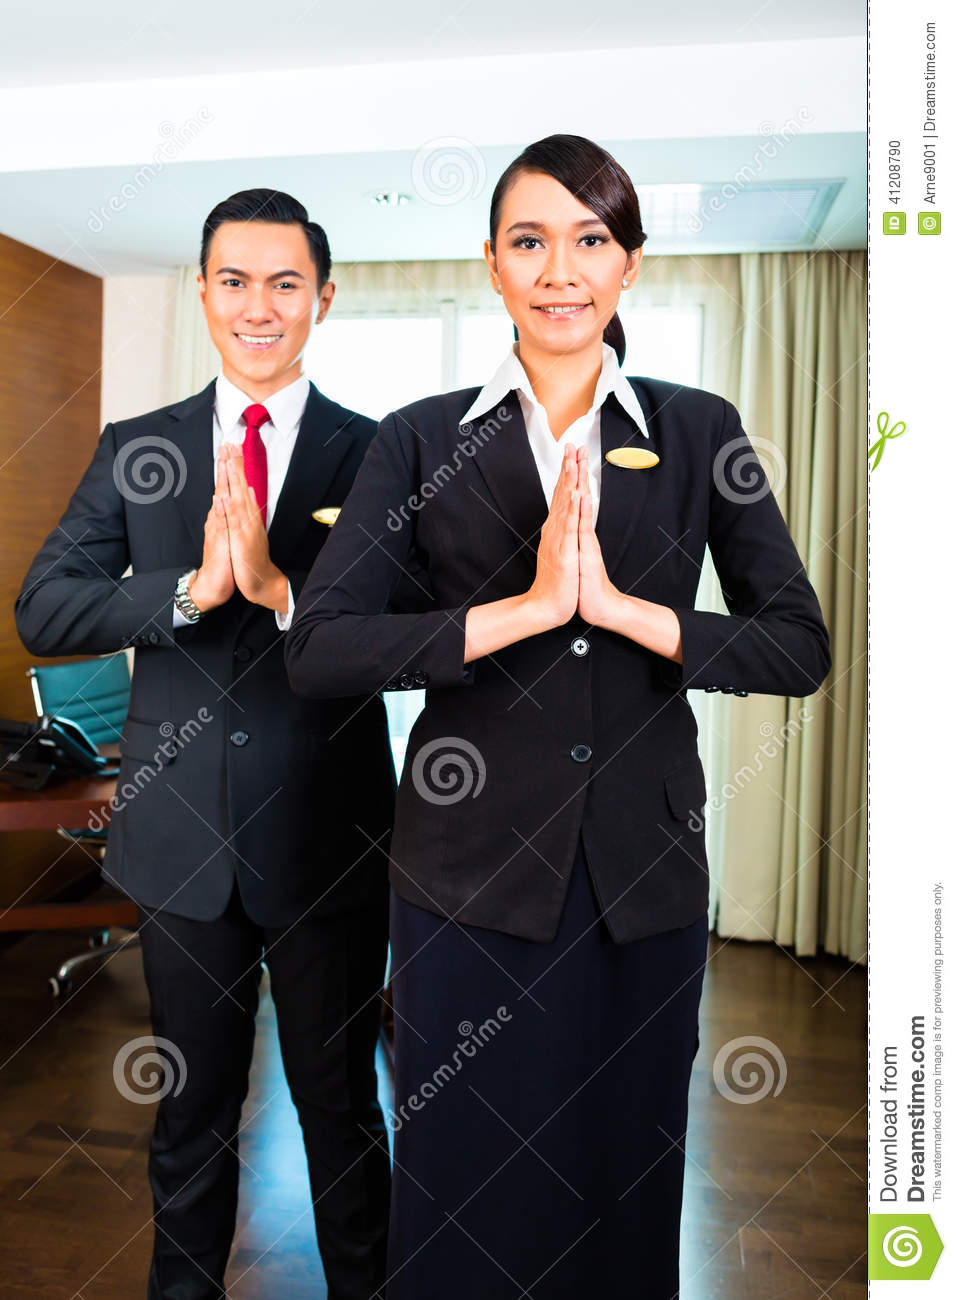 Asian Hotel Staff Greeting With Hands Put Together Stock